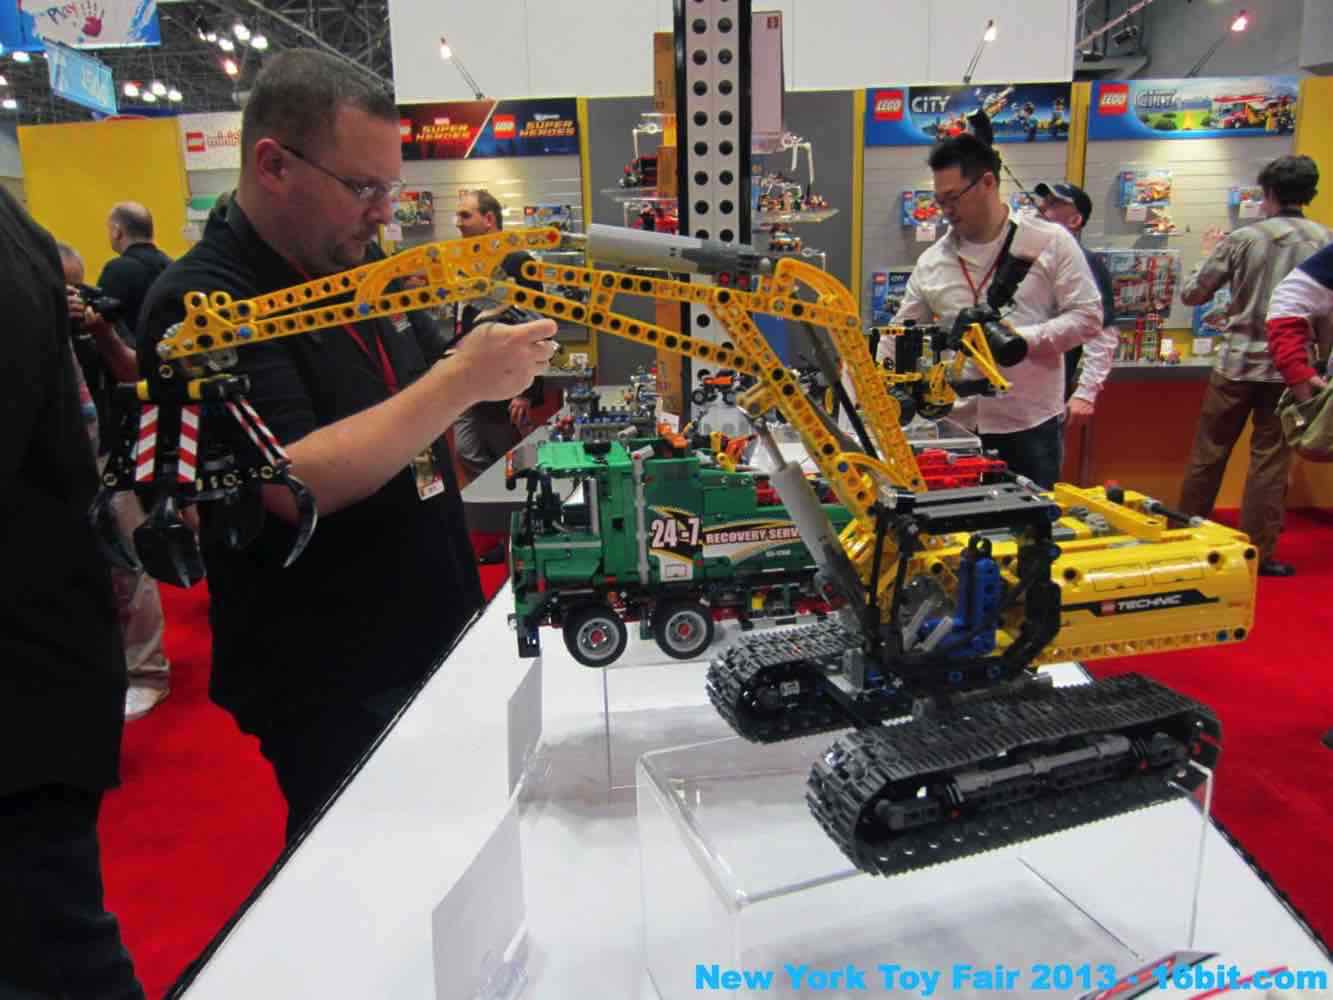 16bit Com Toy Fair Coverage Of Lego Technic From Adam Pawlus